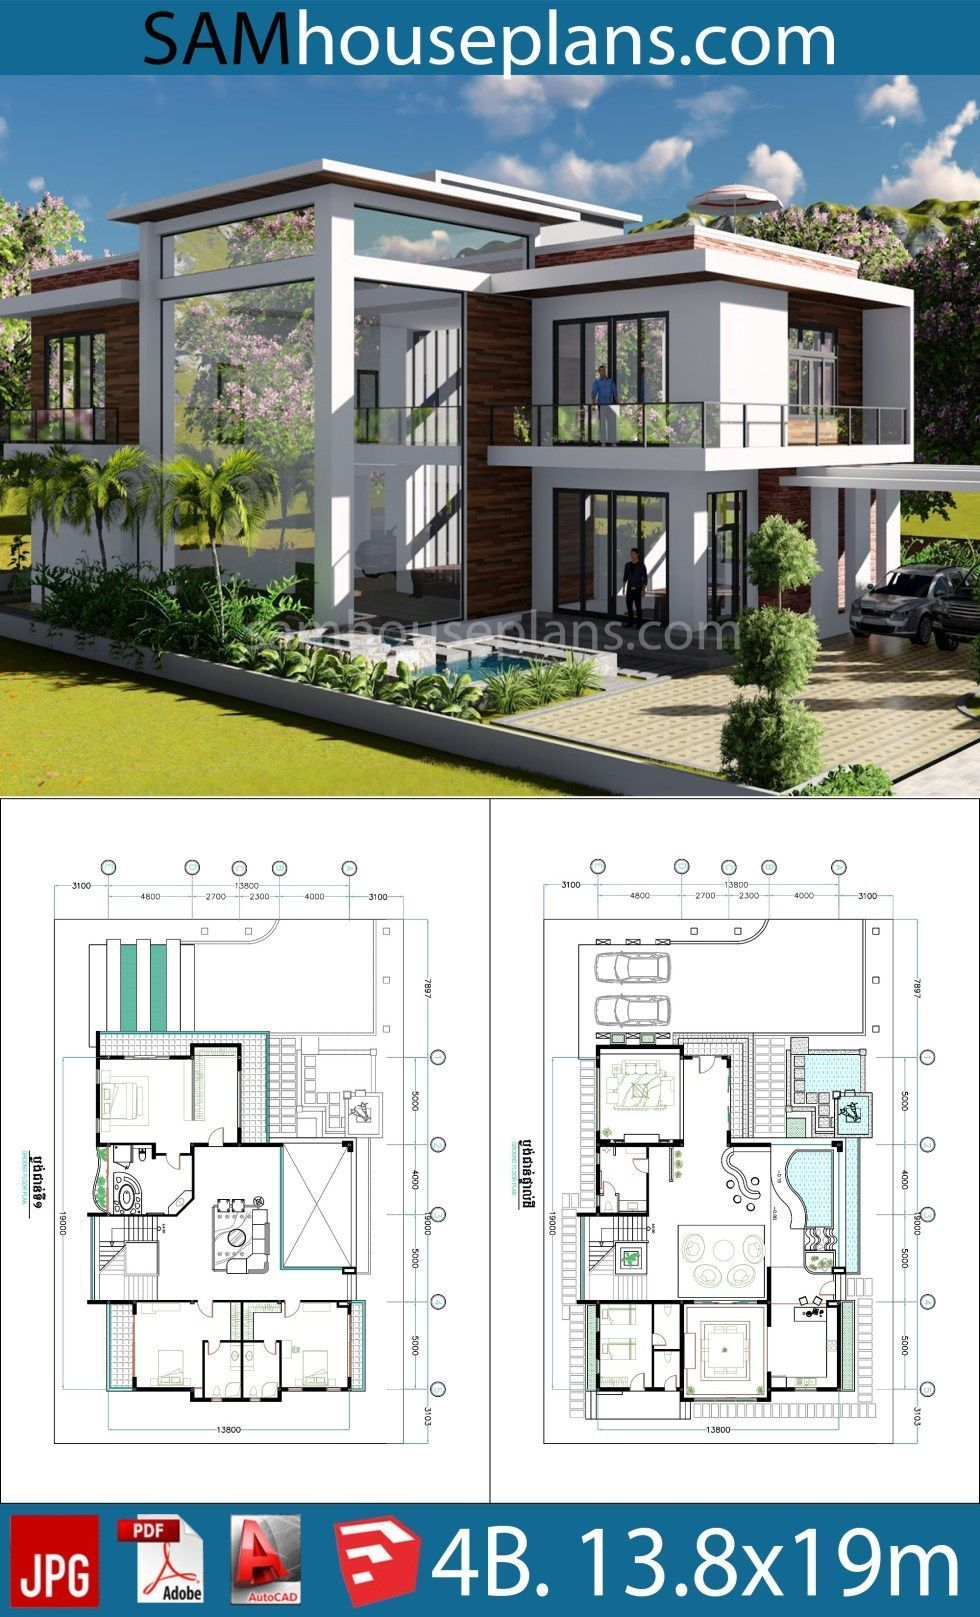 4 Bedroom Home Plan 13 8x19m Sam House Plans 138x19m Bedroom Home Home Des In 2020 Mansion Floor Plan Beach House Plans Contemporary House Plans